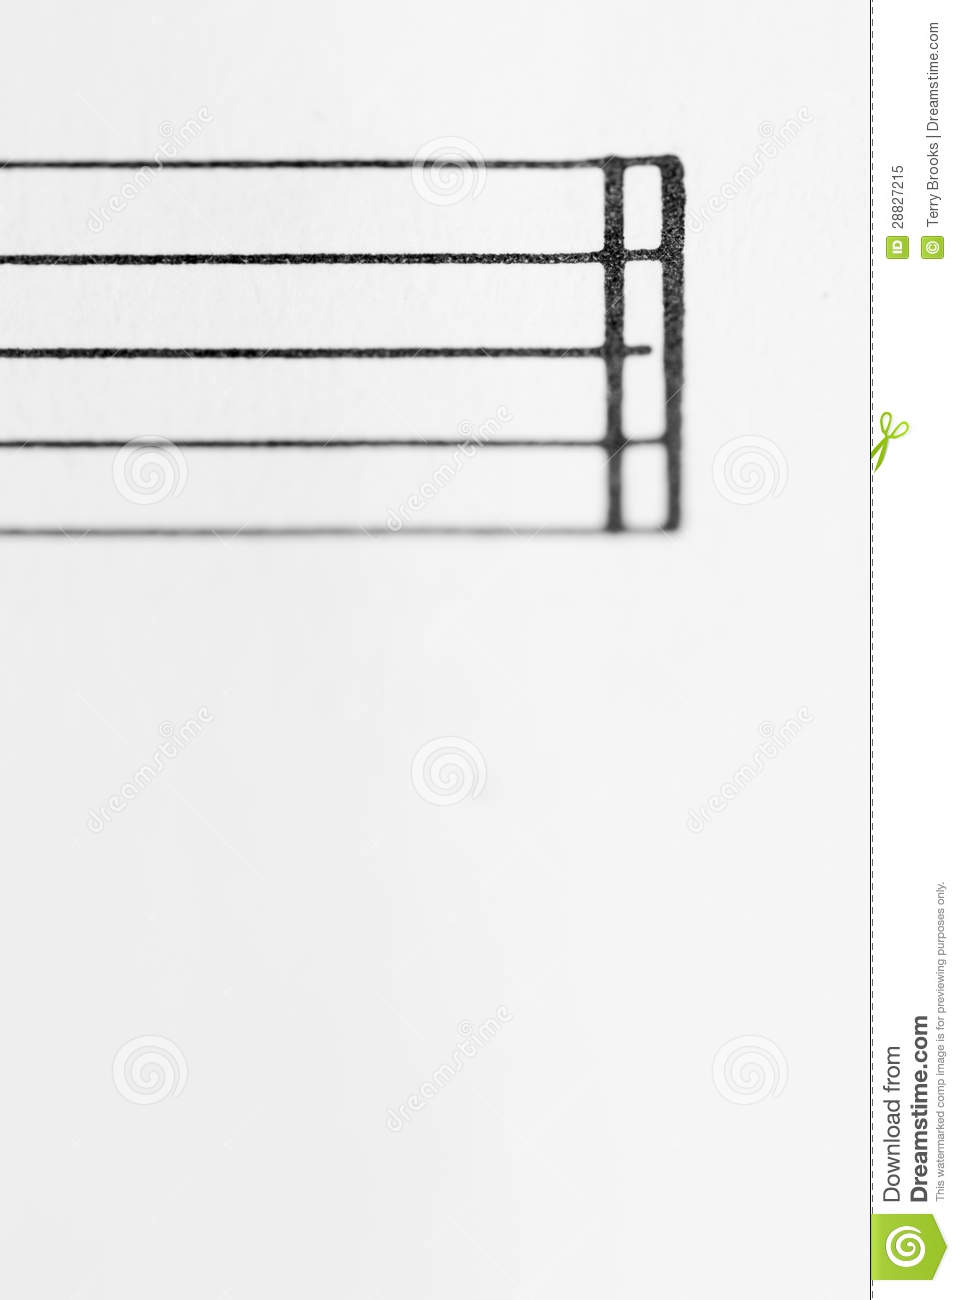 Blank sheet music clipart picture transparent download Blank Sheet Music Clipart - Clipart Kid picture transparent download